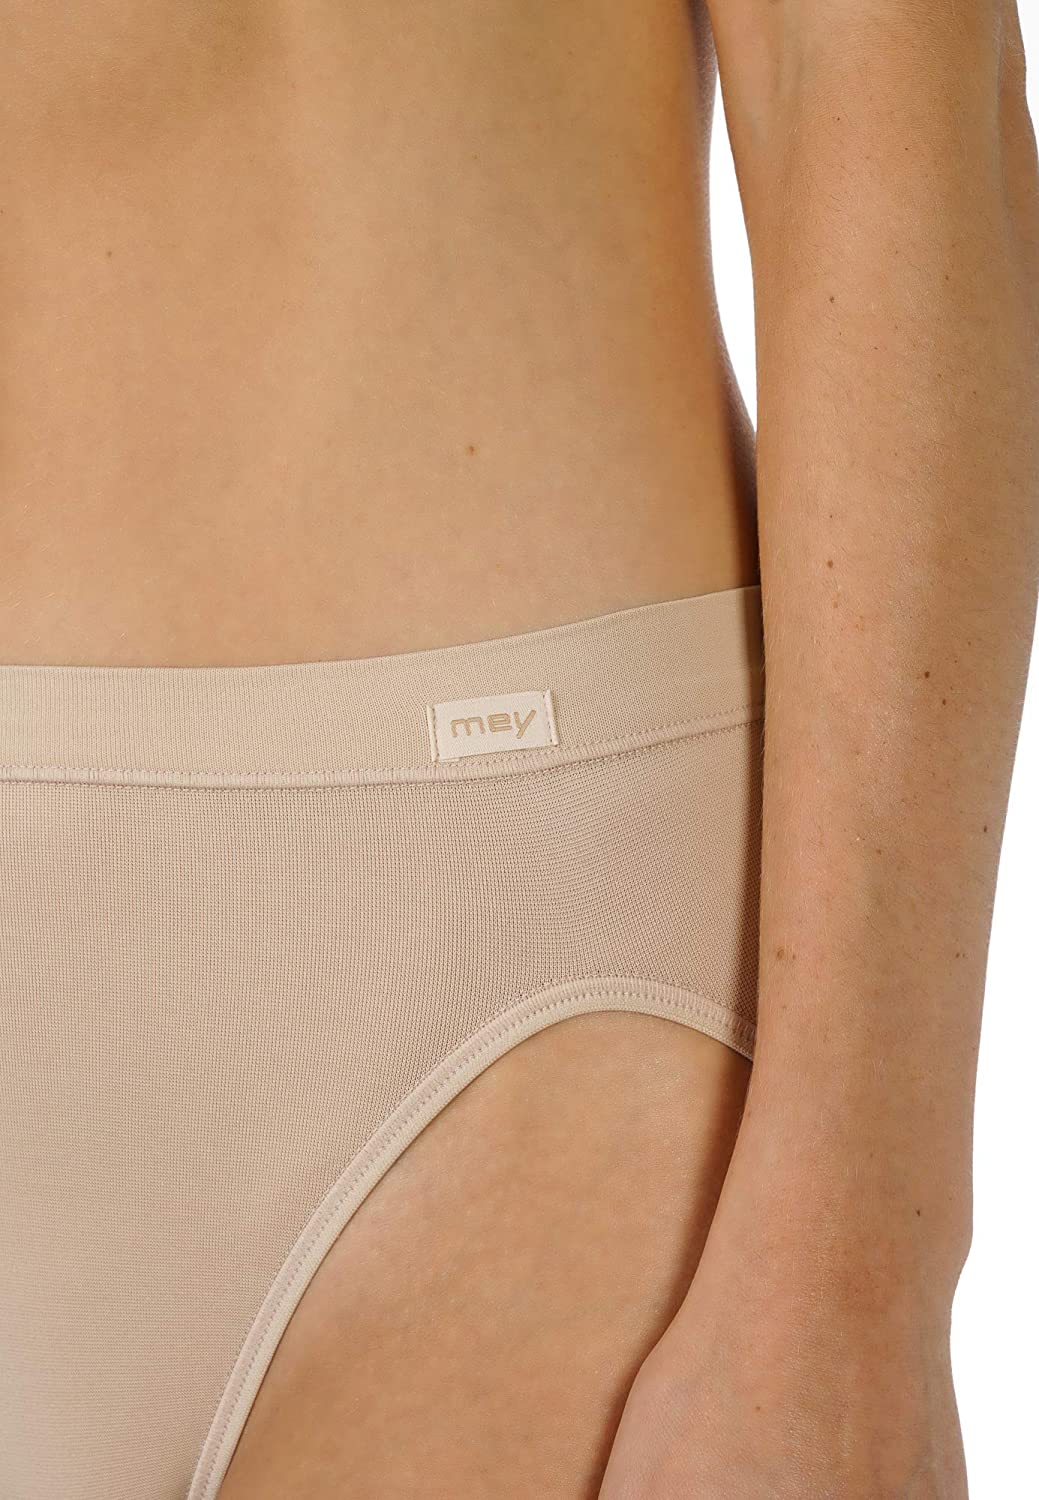 Mey 59201-1 Womens Emotion White Solid Colour Knickers Panty Brief